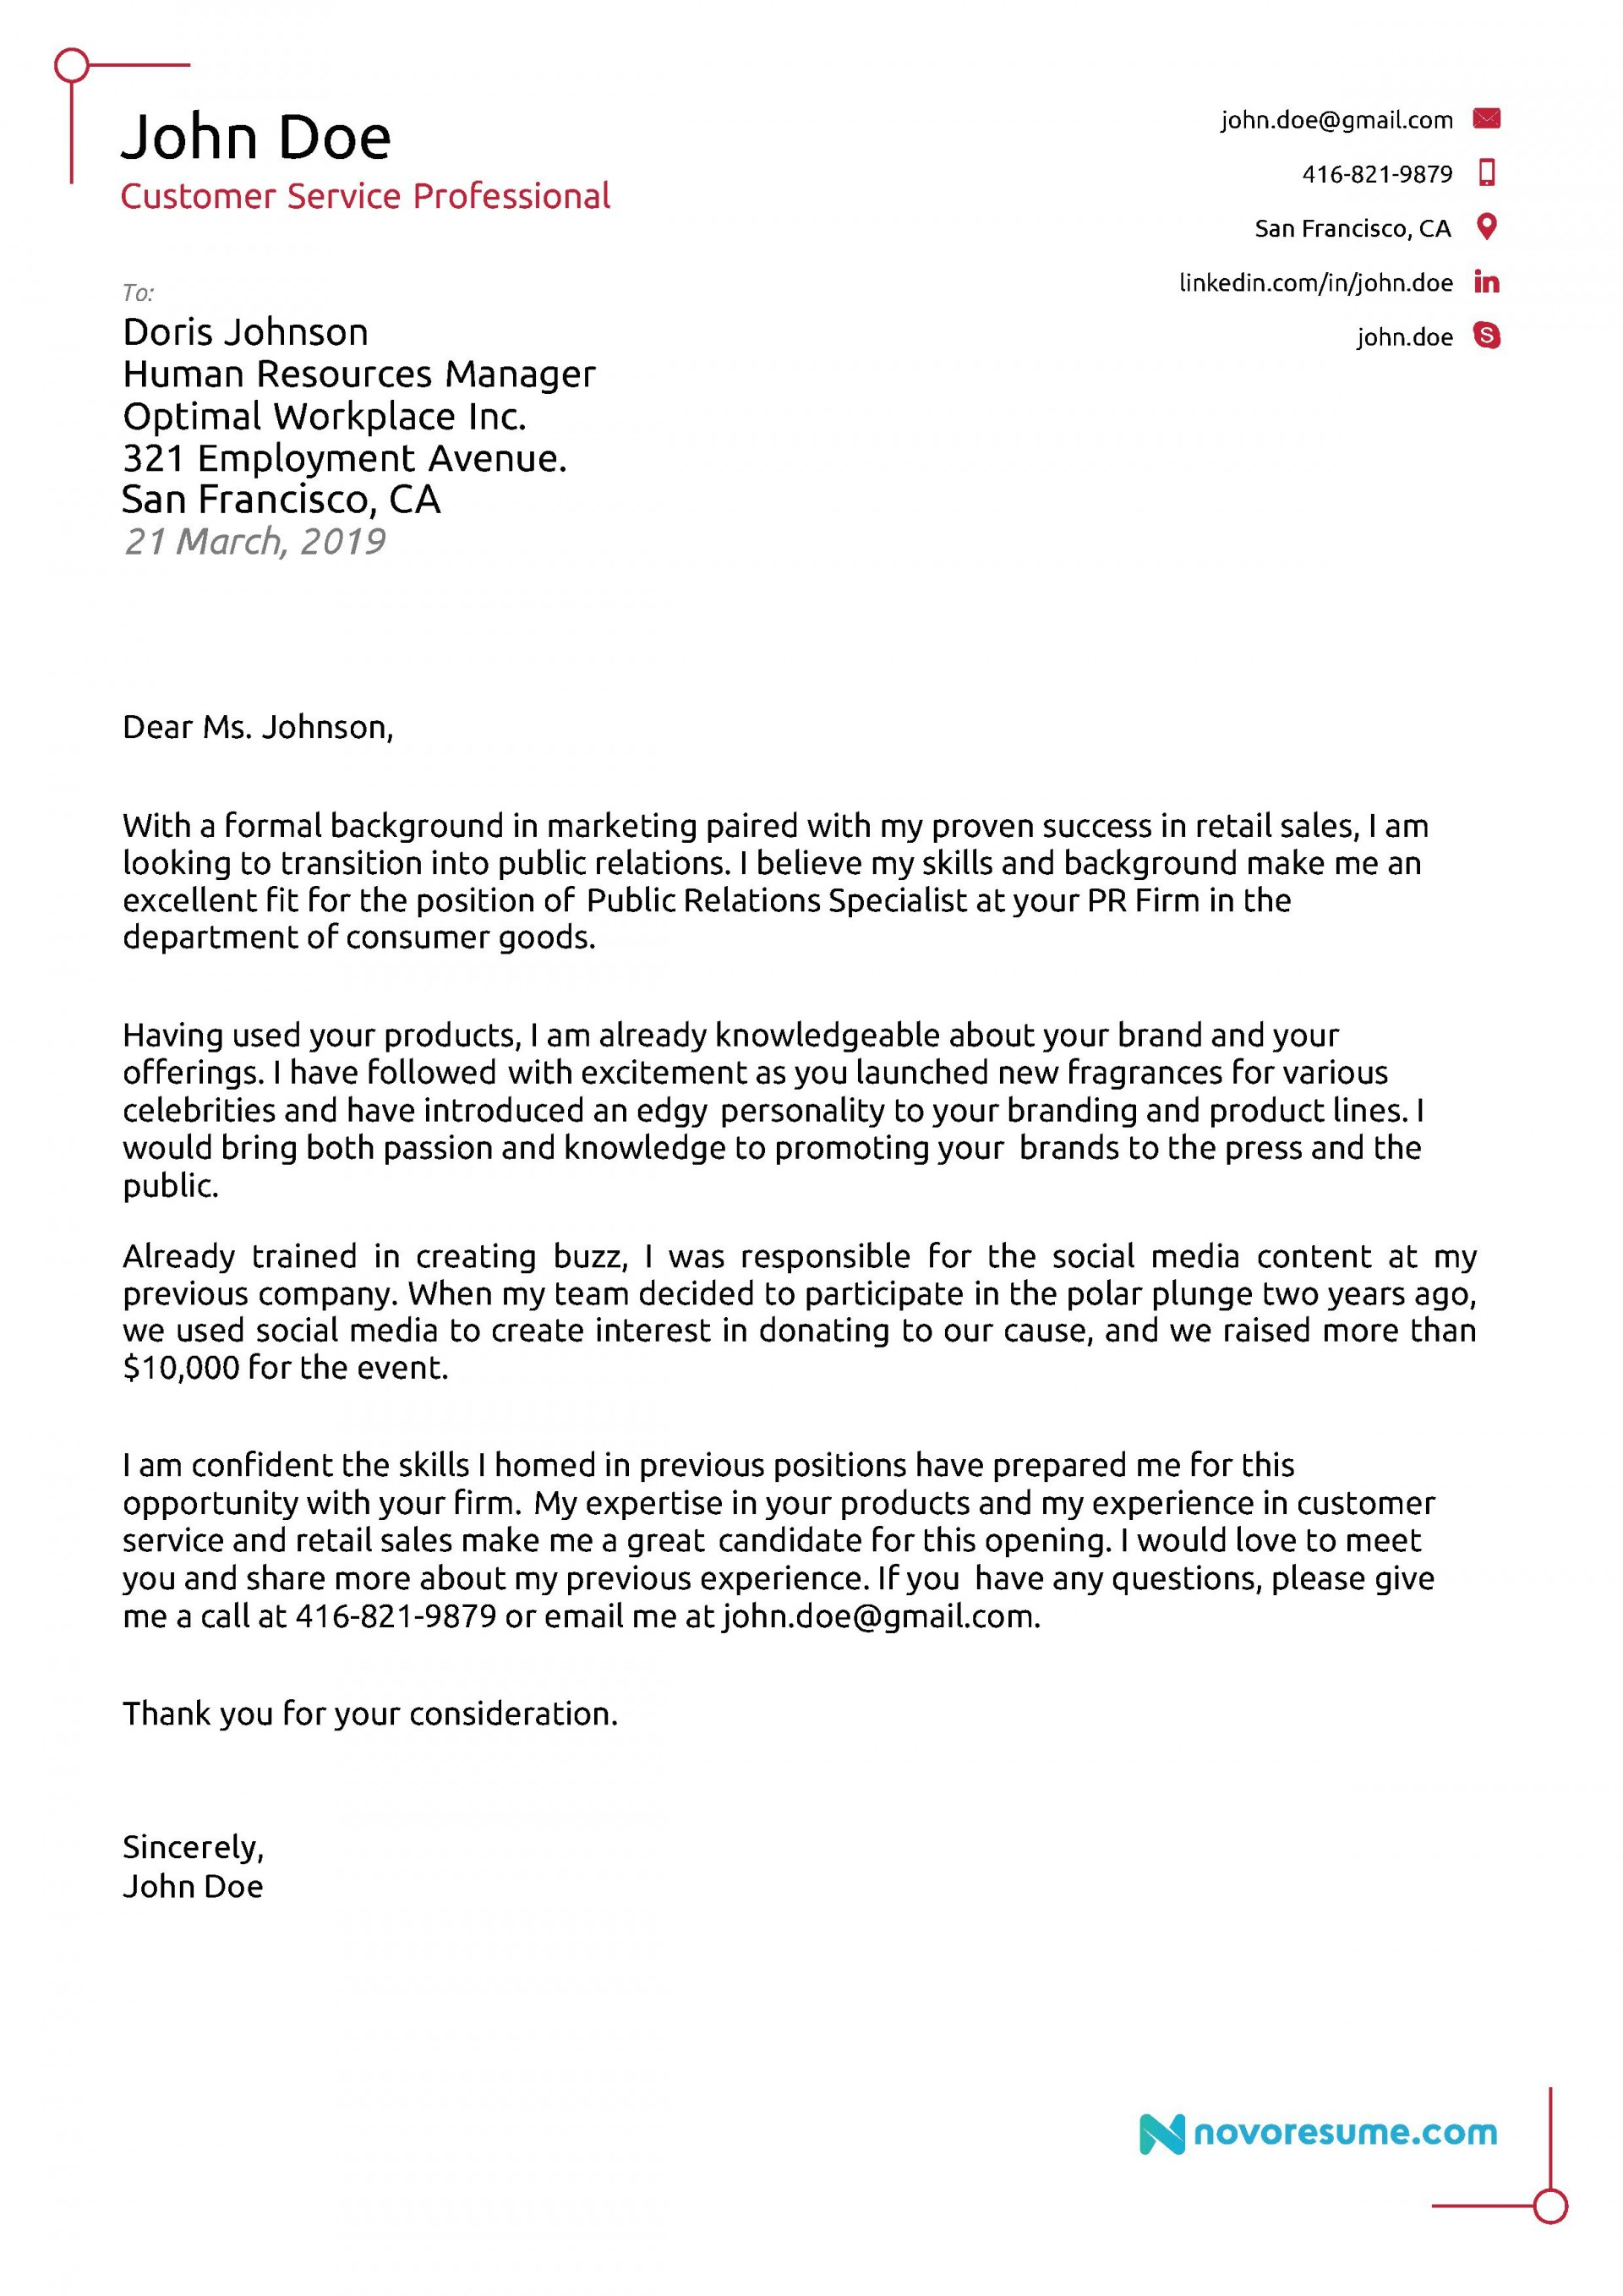 004 Fascinating Cover Letter For Job Template Image  Sample Cv Application Email Resume Microsoft Word1920